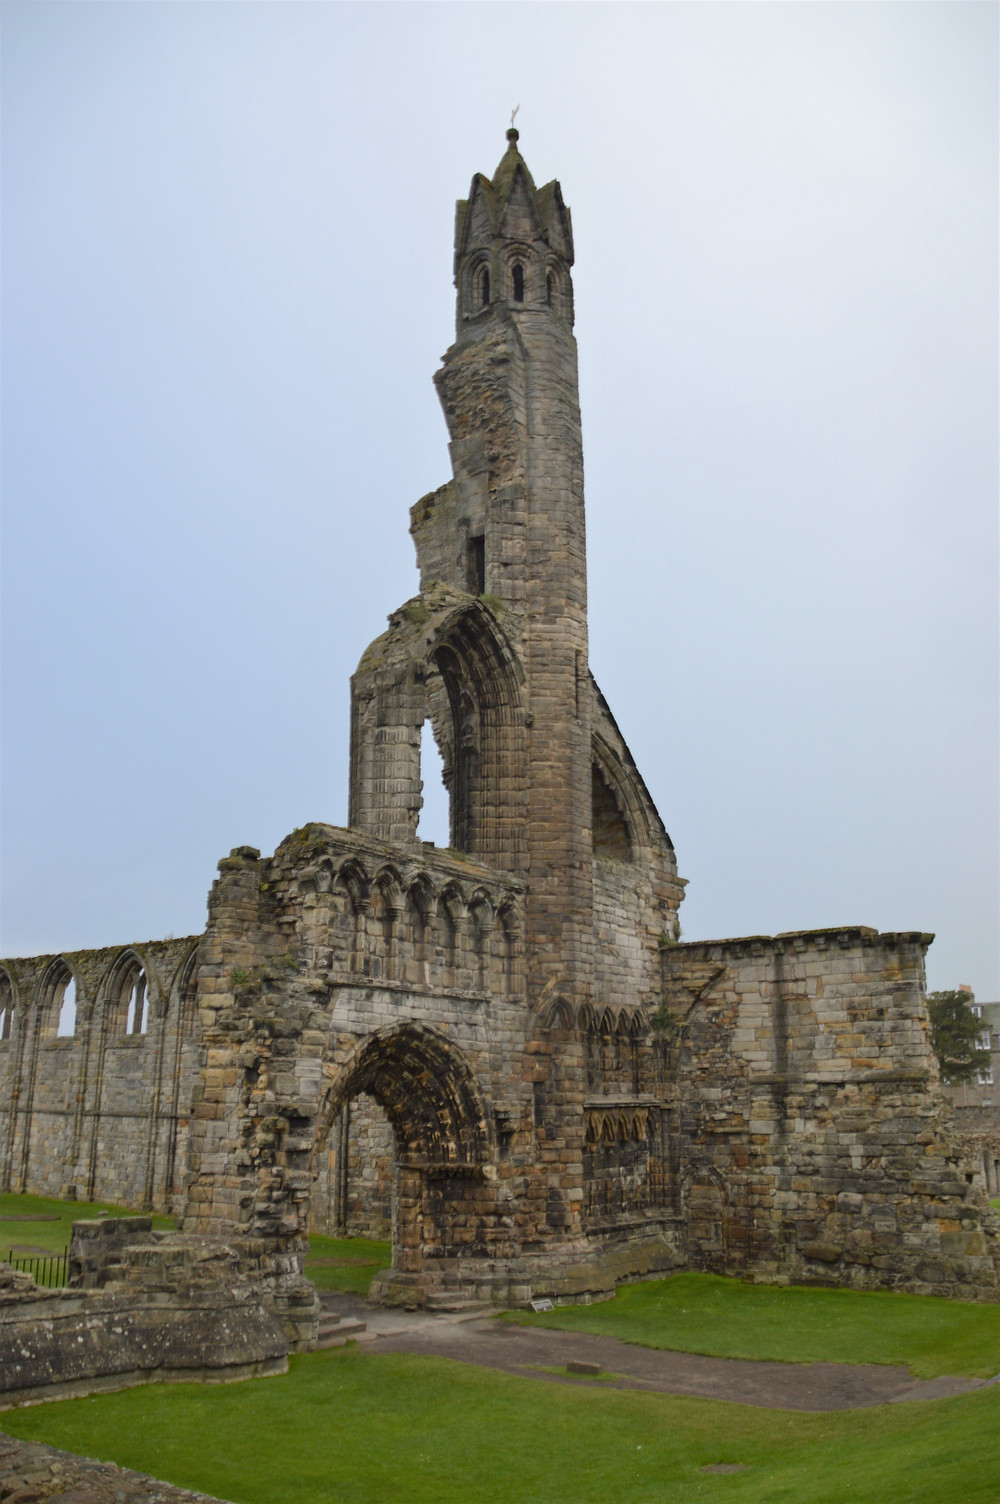 The 984 foot tall St Rule's tower was part of St Andrews Cathedral was built in the 11th century to house the relics of St. Andrew.